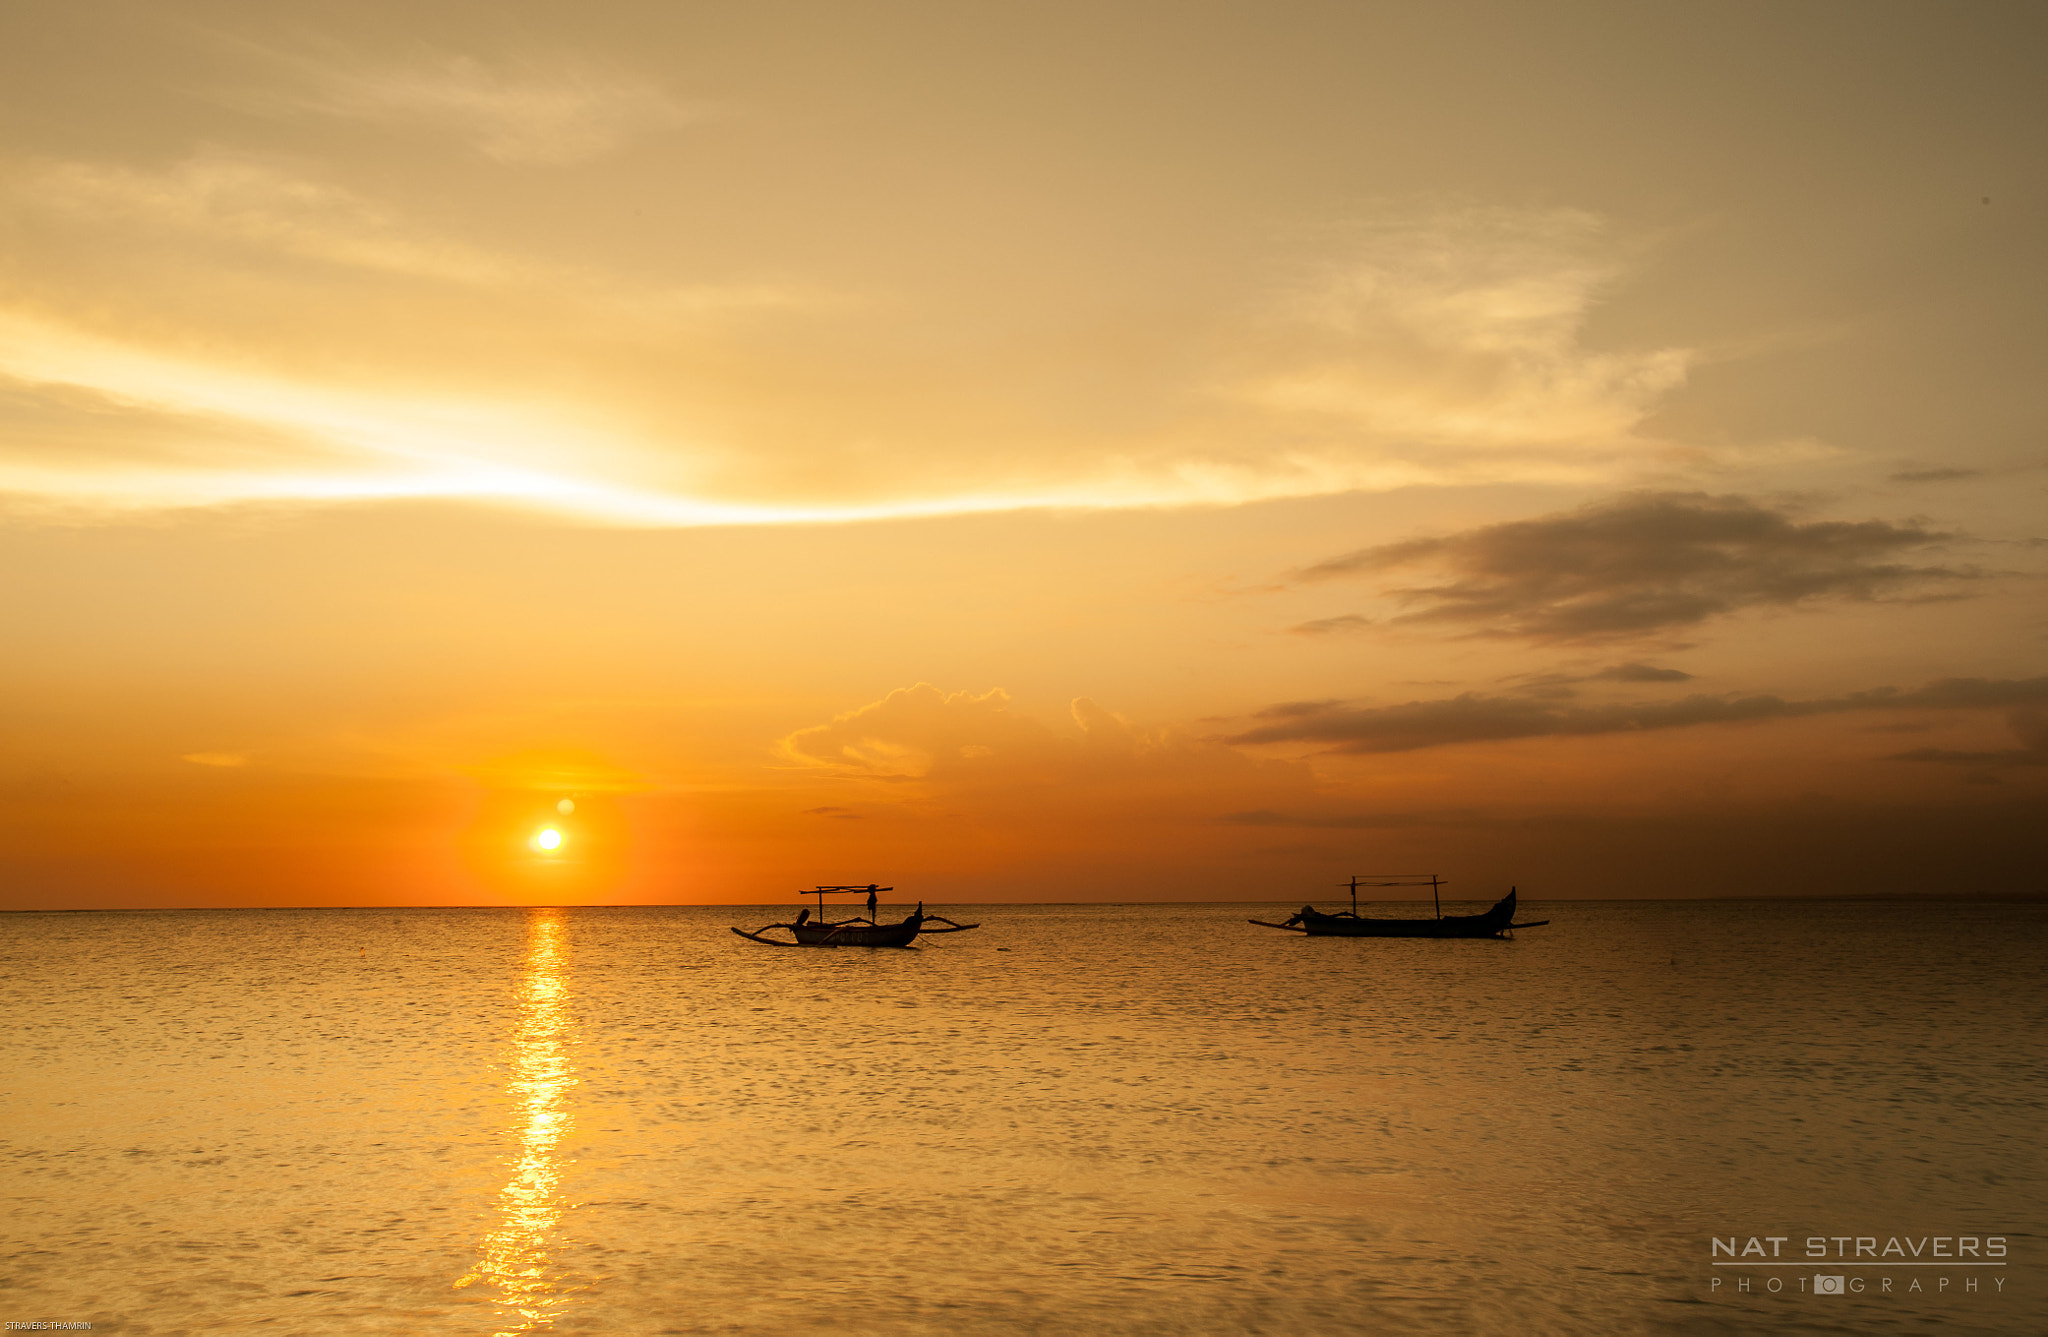 Photograph Sunset on the water ought to be a quiet and easy time by Nathalie Stravers on 500px